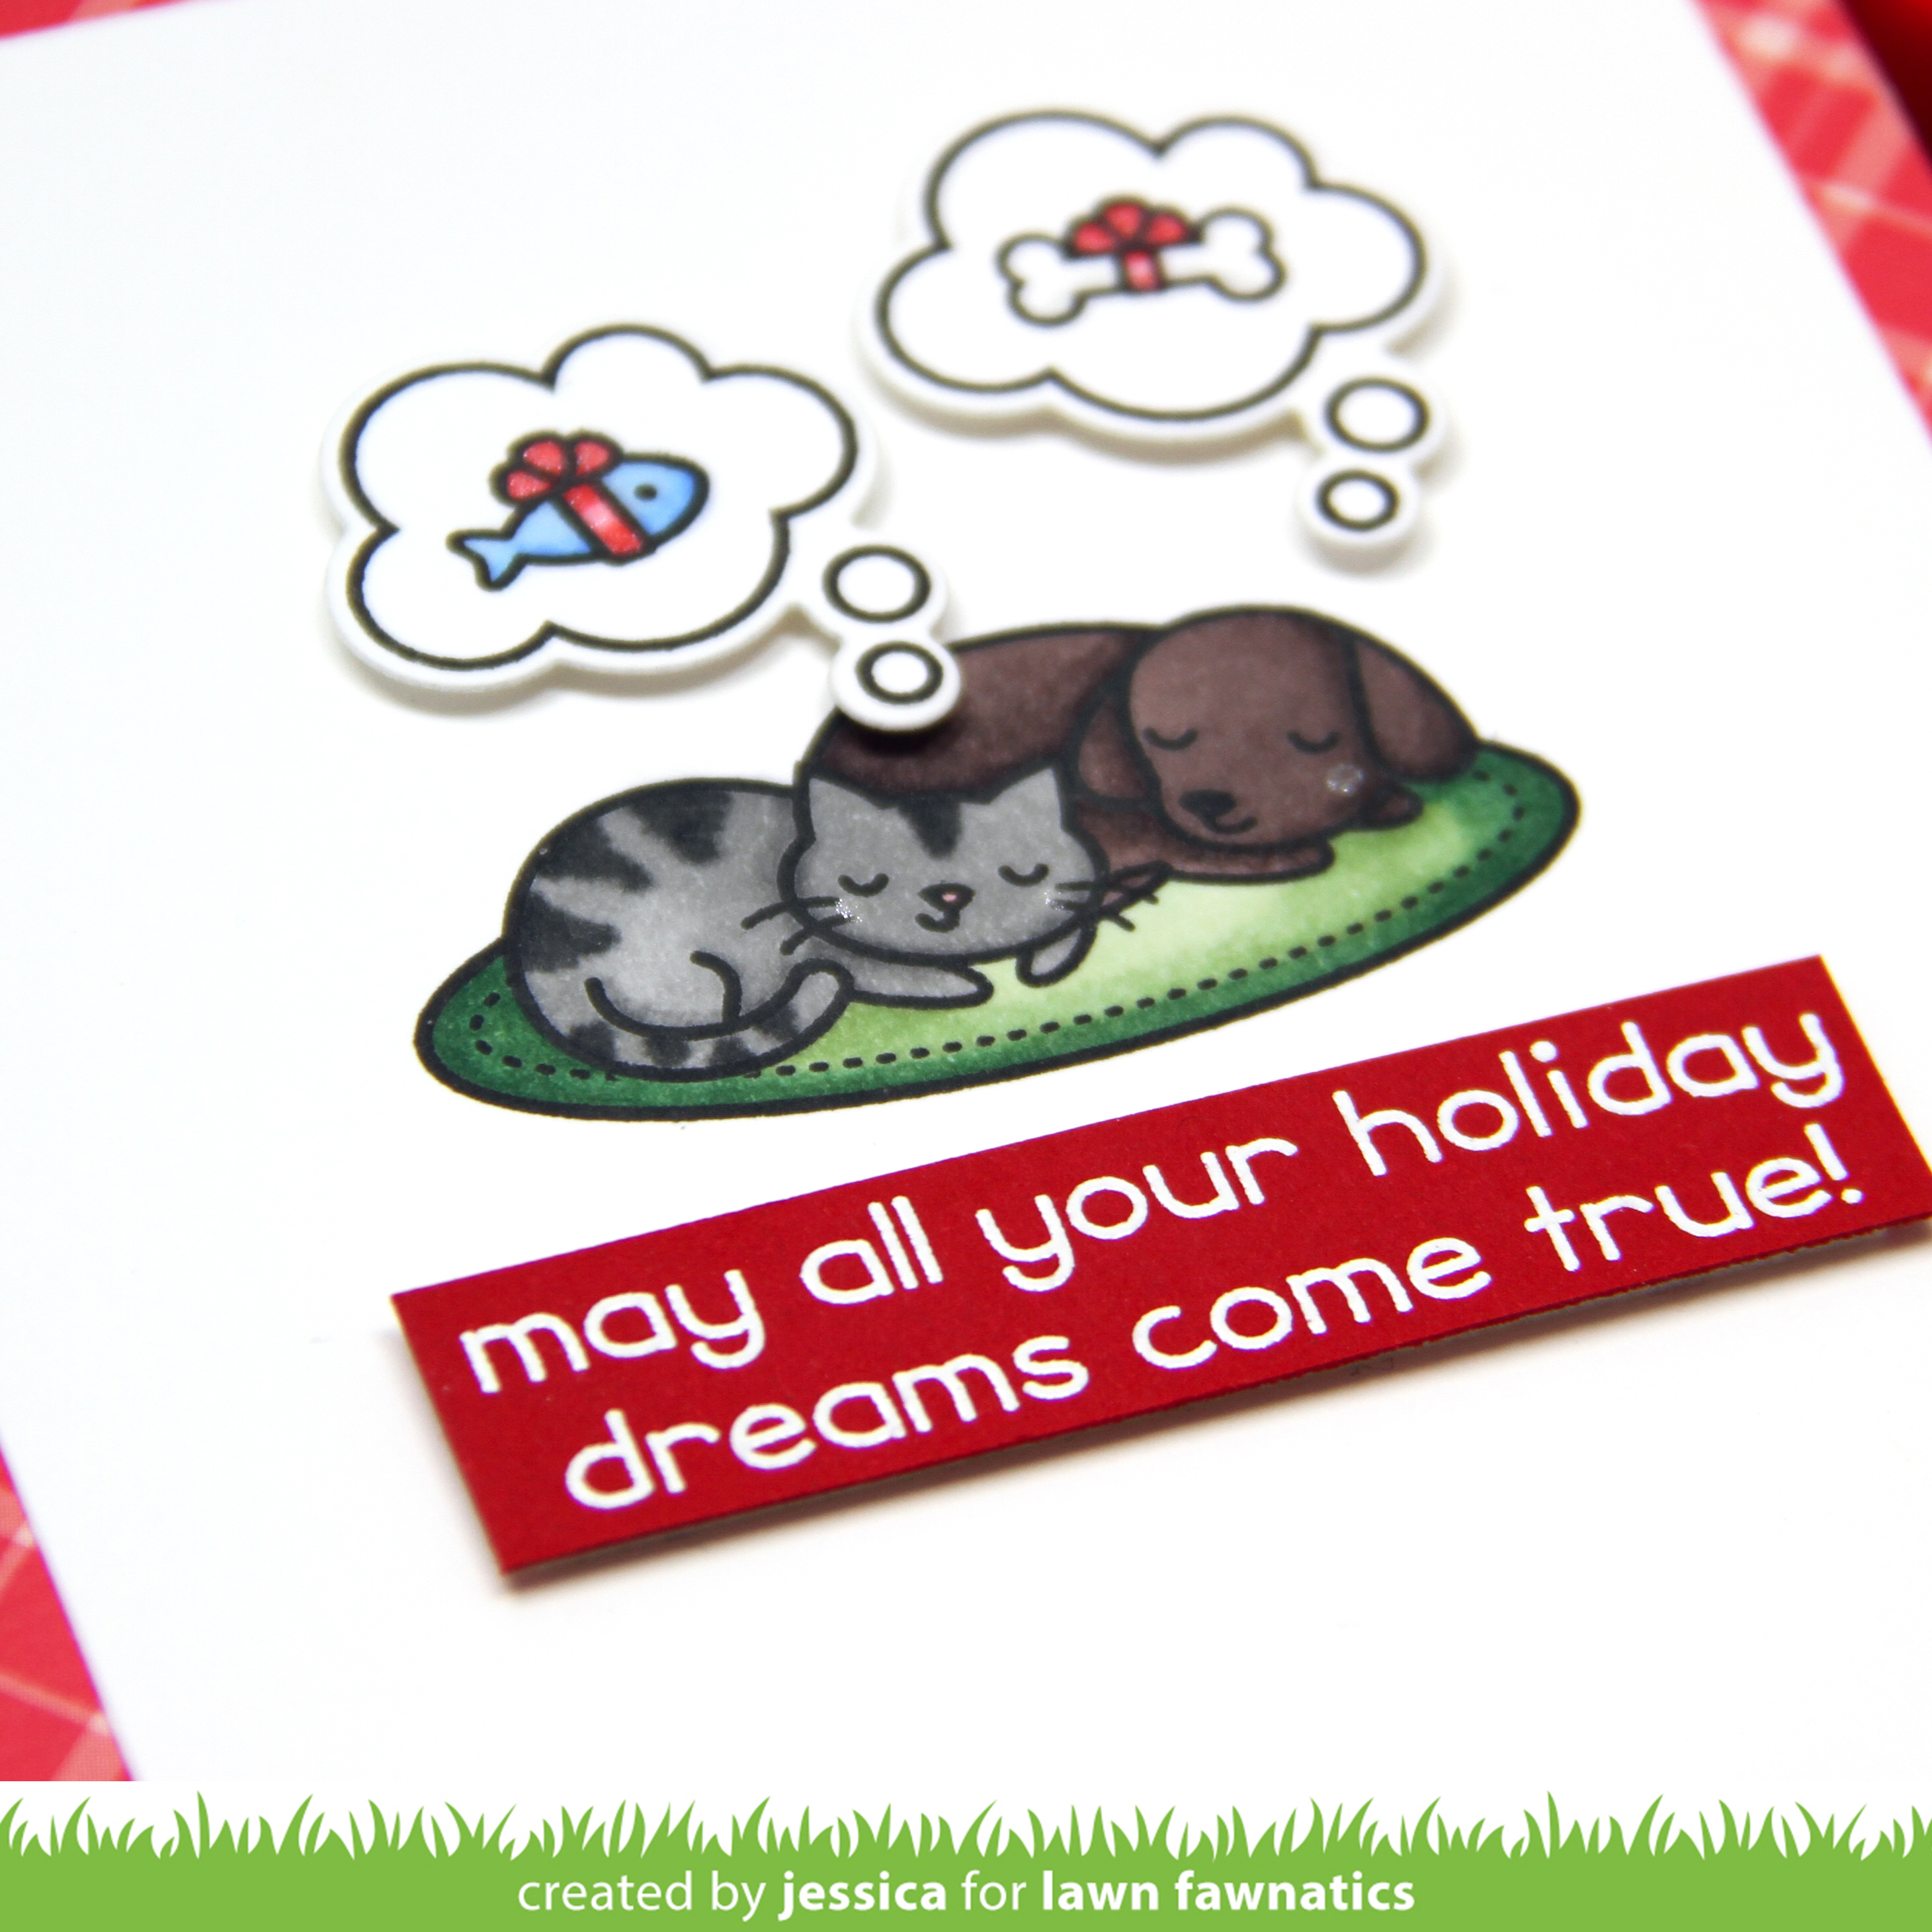 May All Your Holidays Dreams Come True by Jessica Frost-Ballas for Lawn Fawnatics